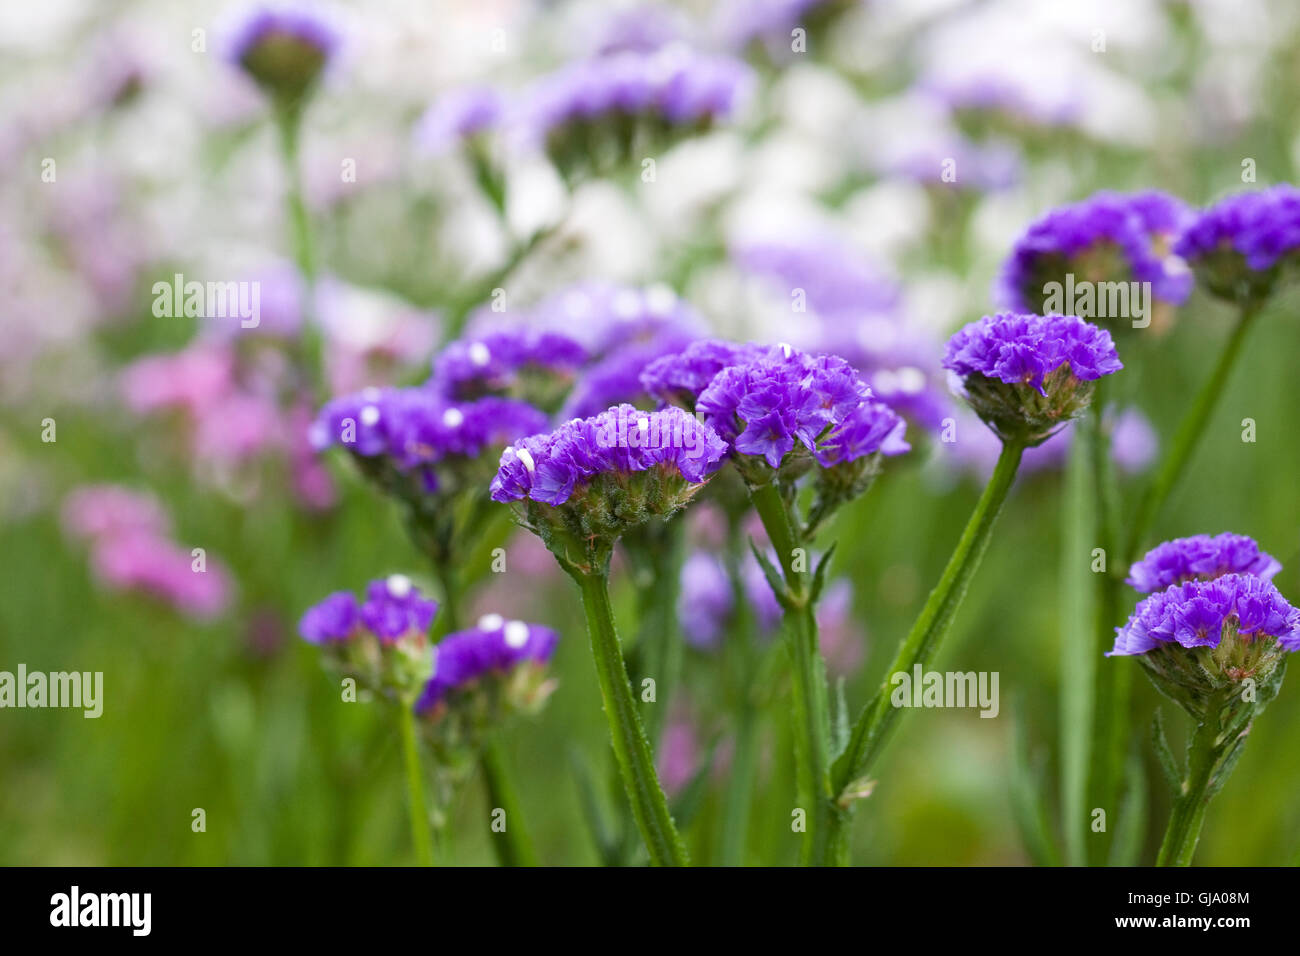 Limonium sinuatum 'Forever' flowers. Statice growing in a summer border. - Stock Image